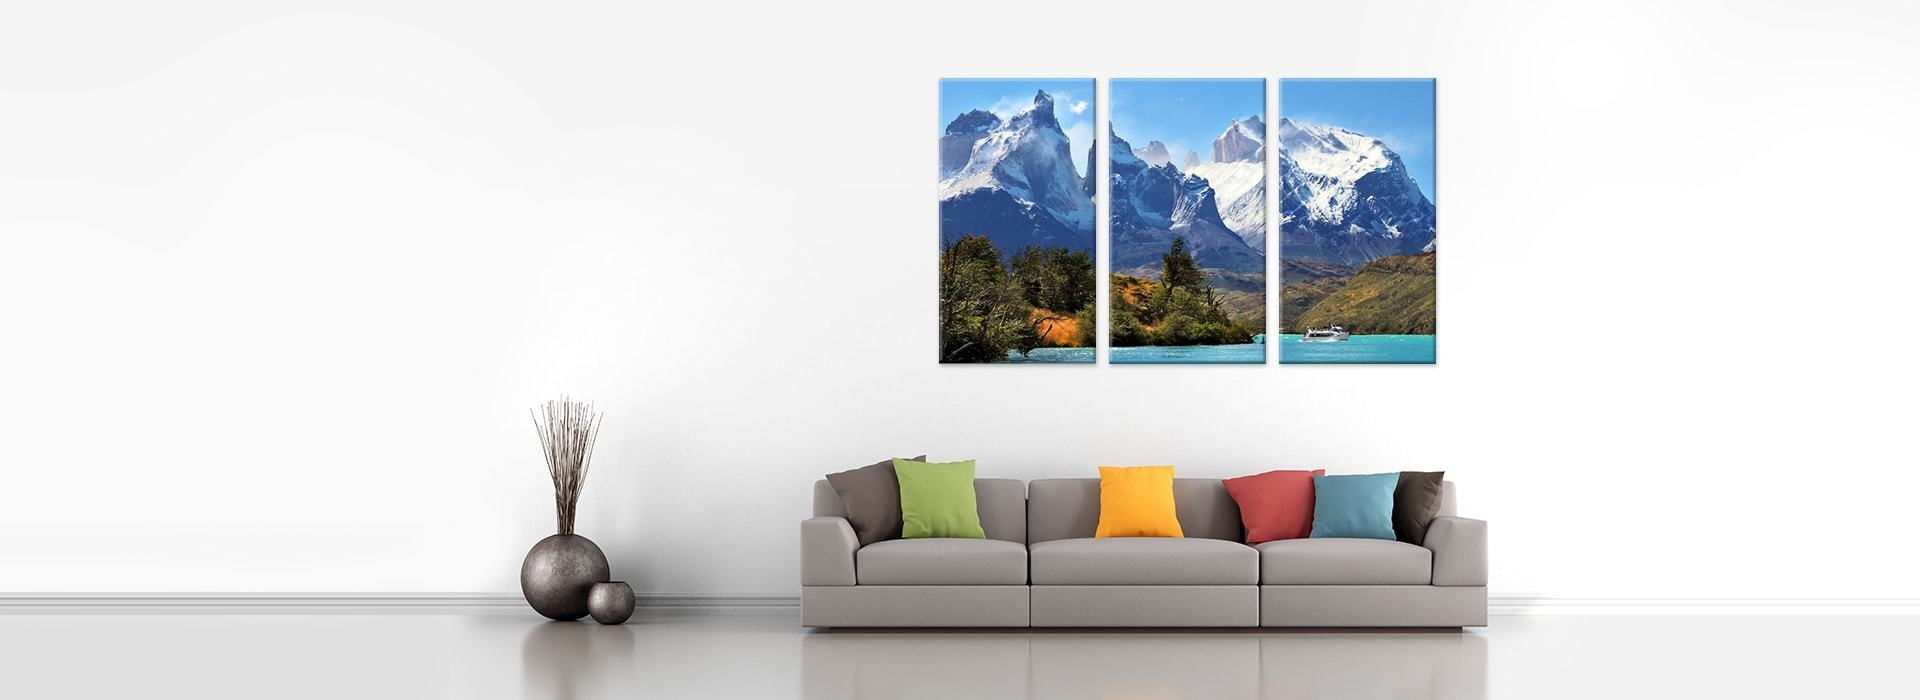 Canvas Prints | Canvas Factory With Regard To Newest Canvas Wall Art Of Perth (View 8 of 15)